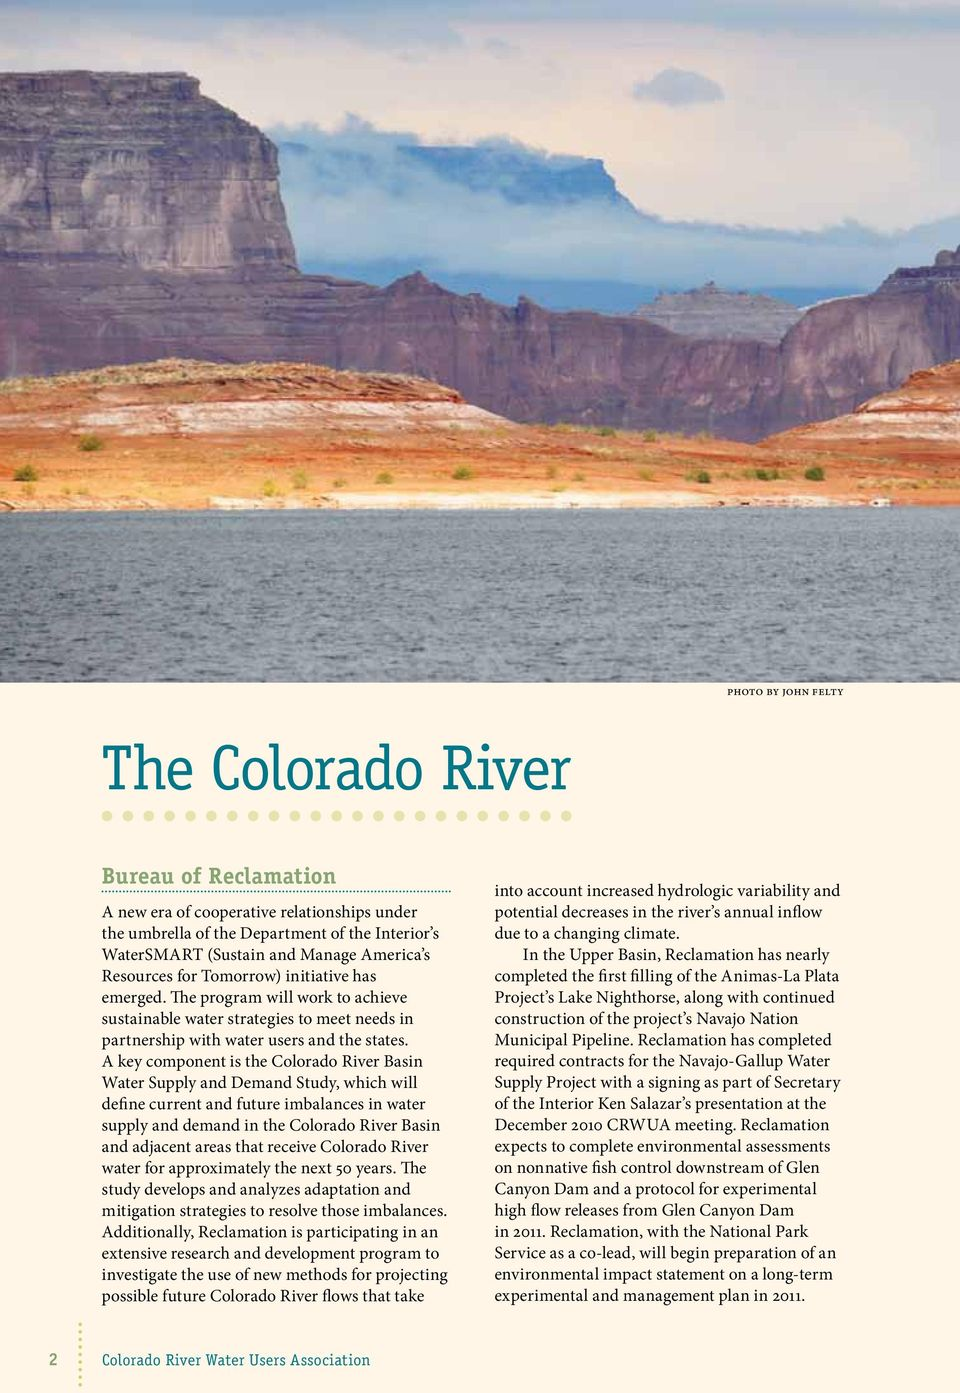 A key component is the Colorado River Basin Water Supply and Demand Study, which will define current and future imbalances in water supply and demand in the Colorado River Basin and adjacent areas